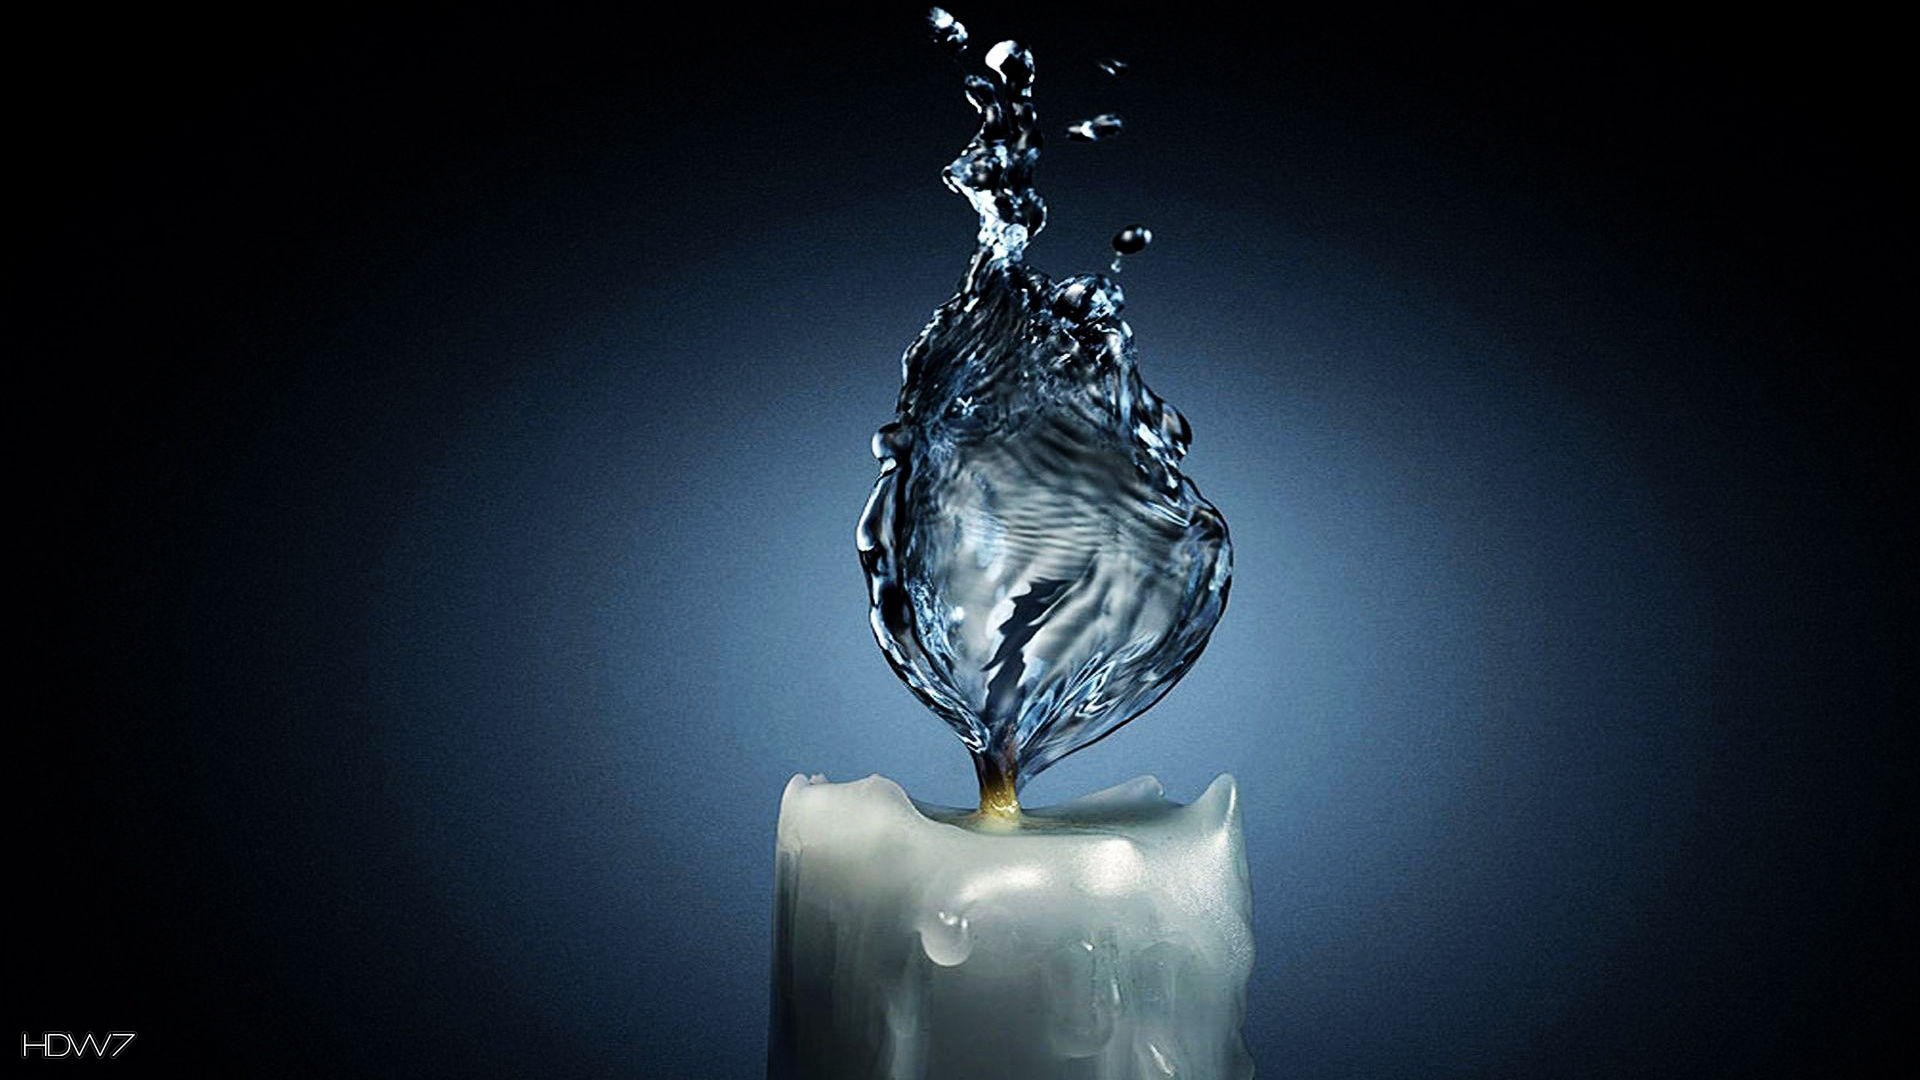 Water hd wallpapers 1080p